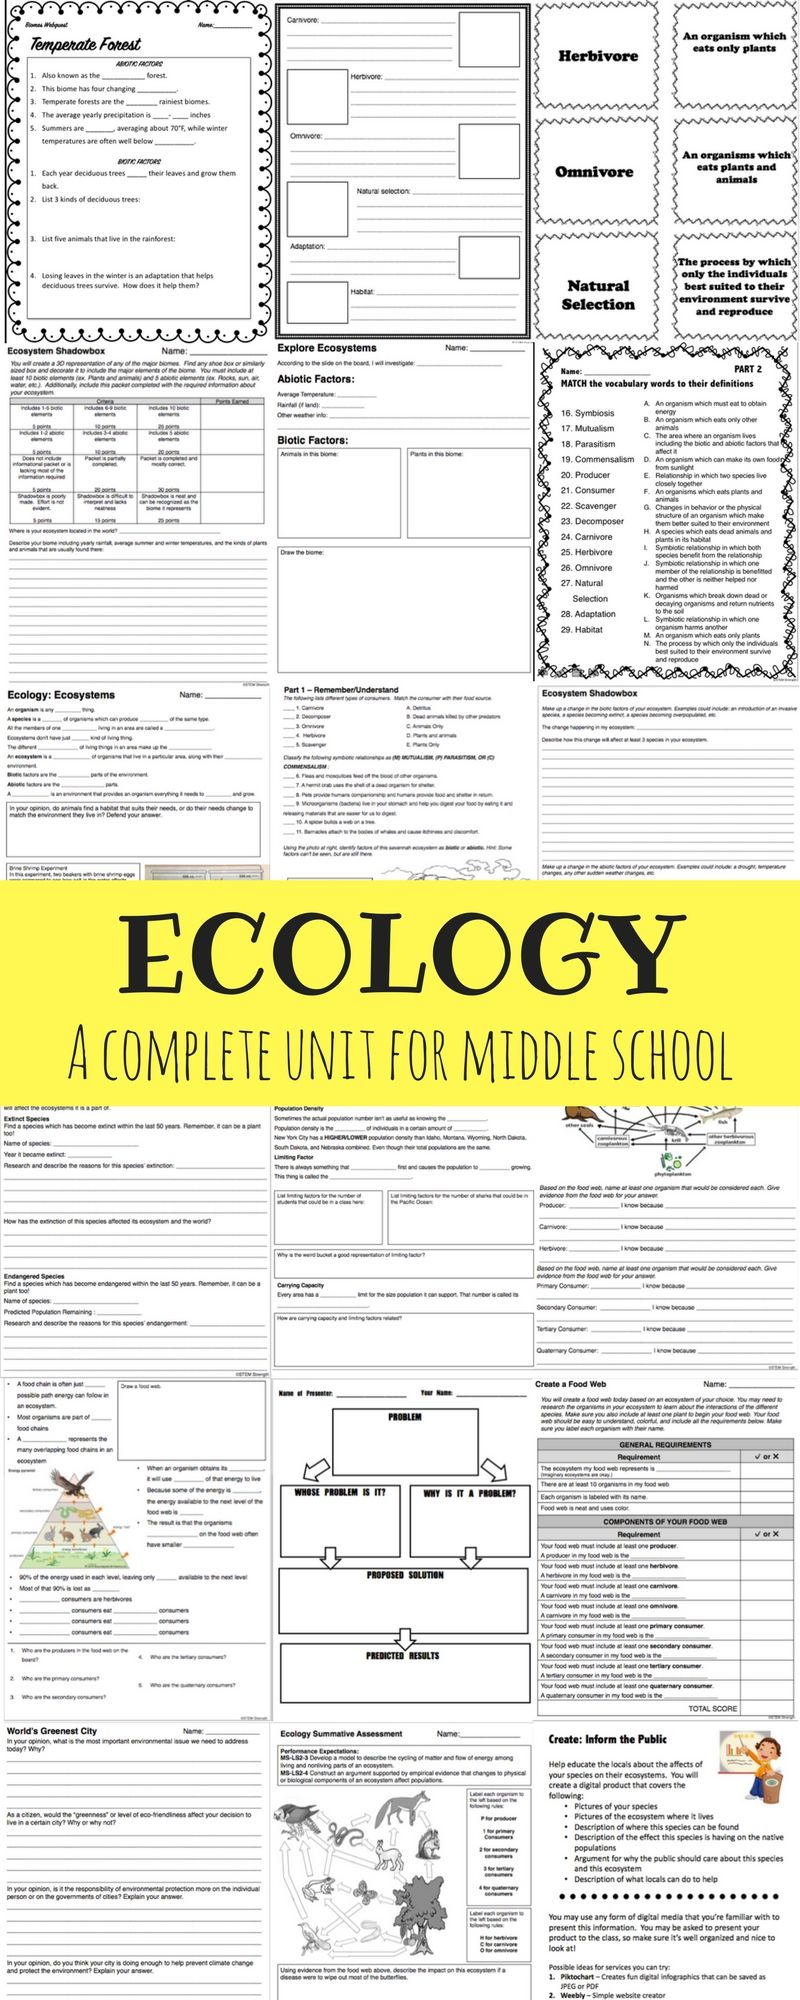 A Complete Ecology Unit For Middle School Including Presentations Student Notes Act Middle School Science Class Relationship Worksheets Middle School Biology